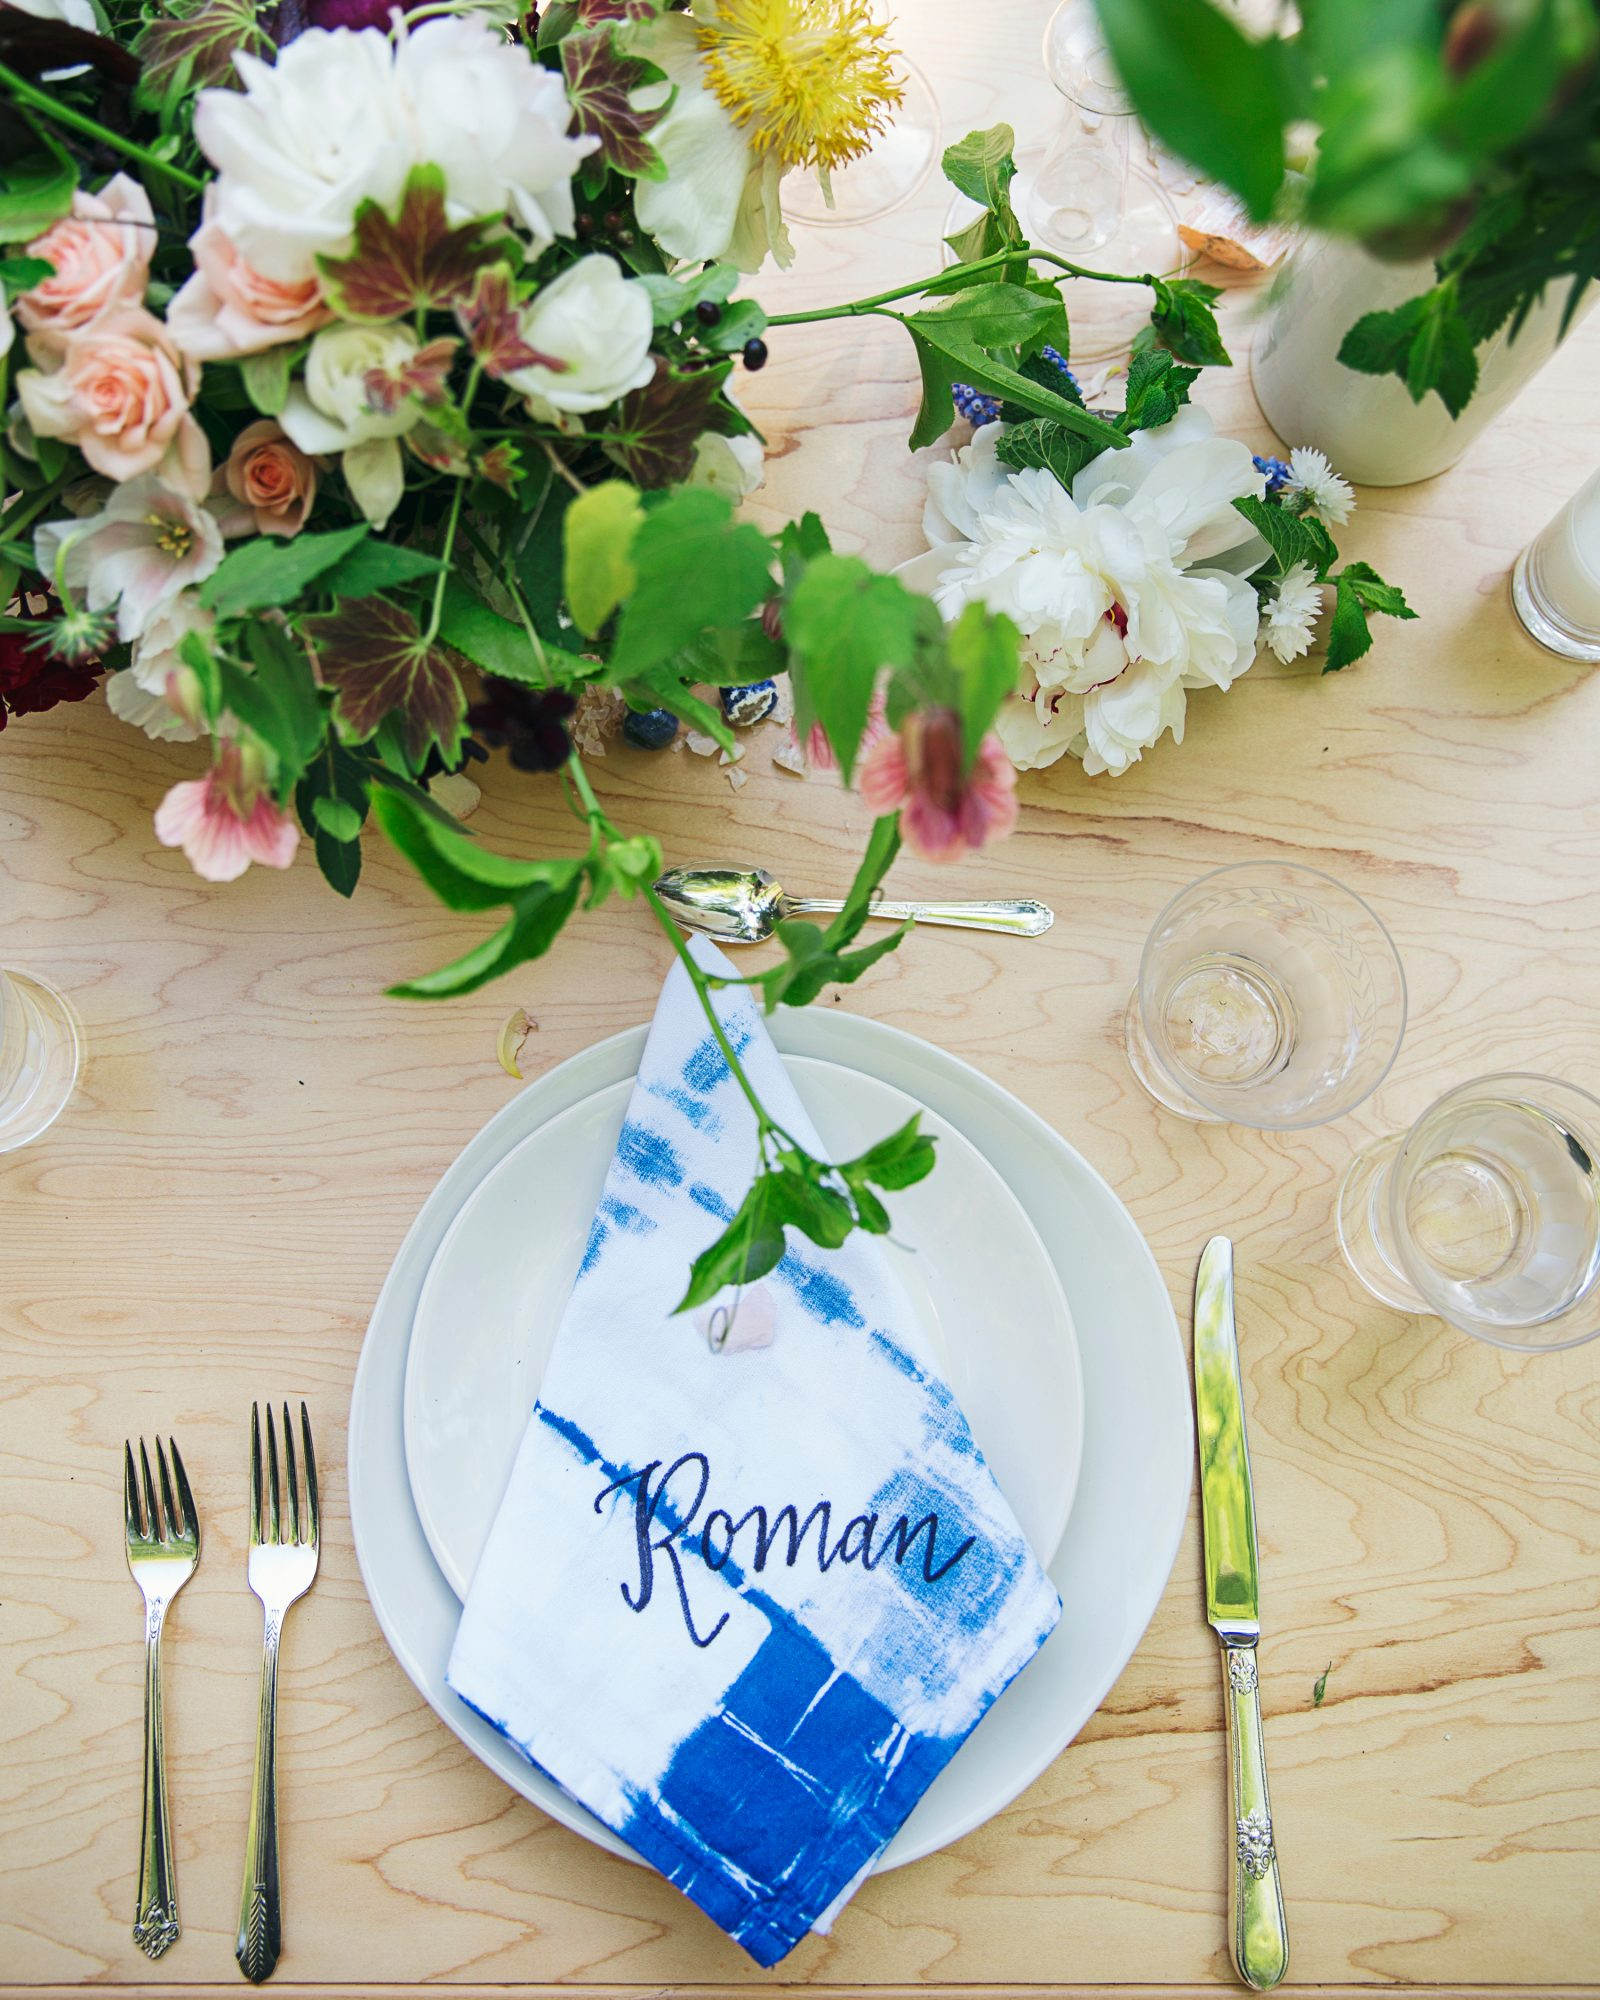 rosie-ambi-wedding-placesetting-4626-s112501-0116.jpg